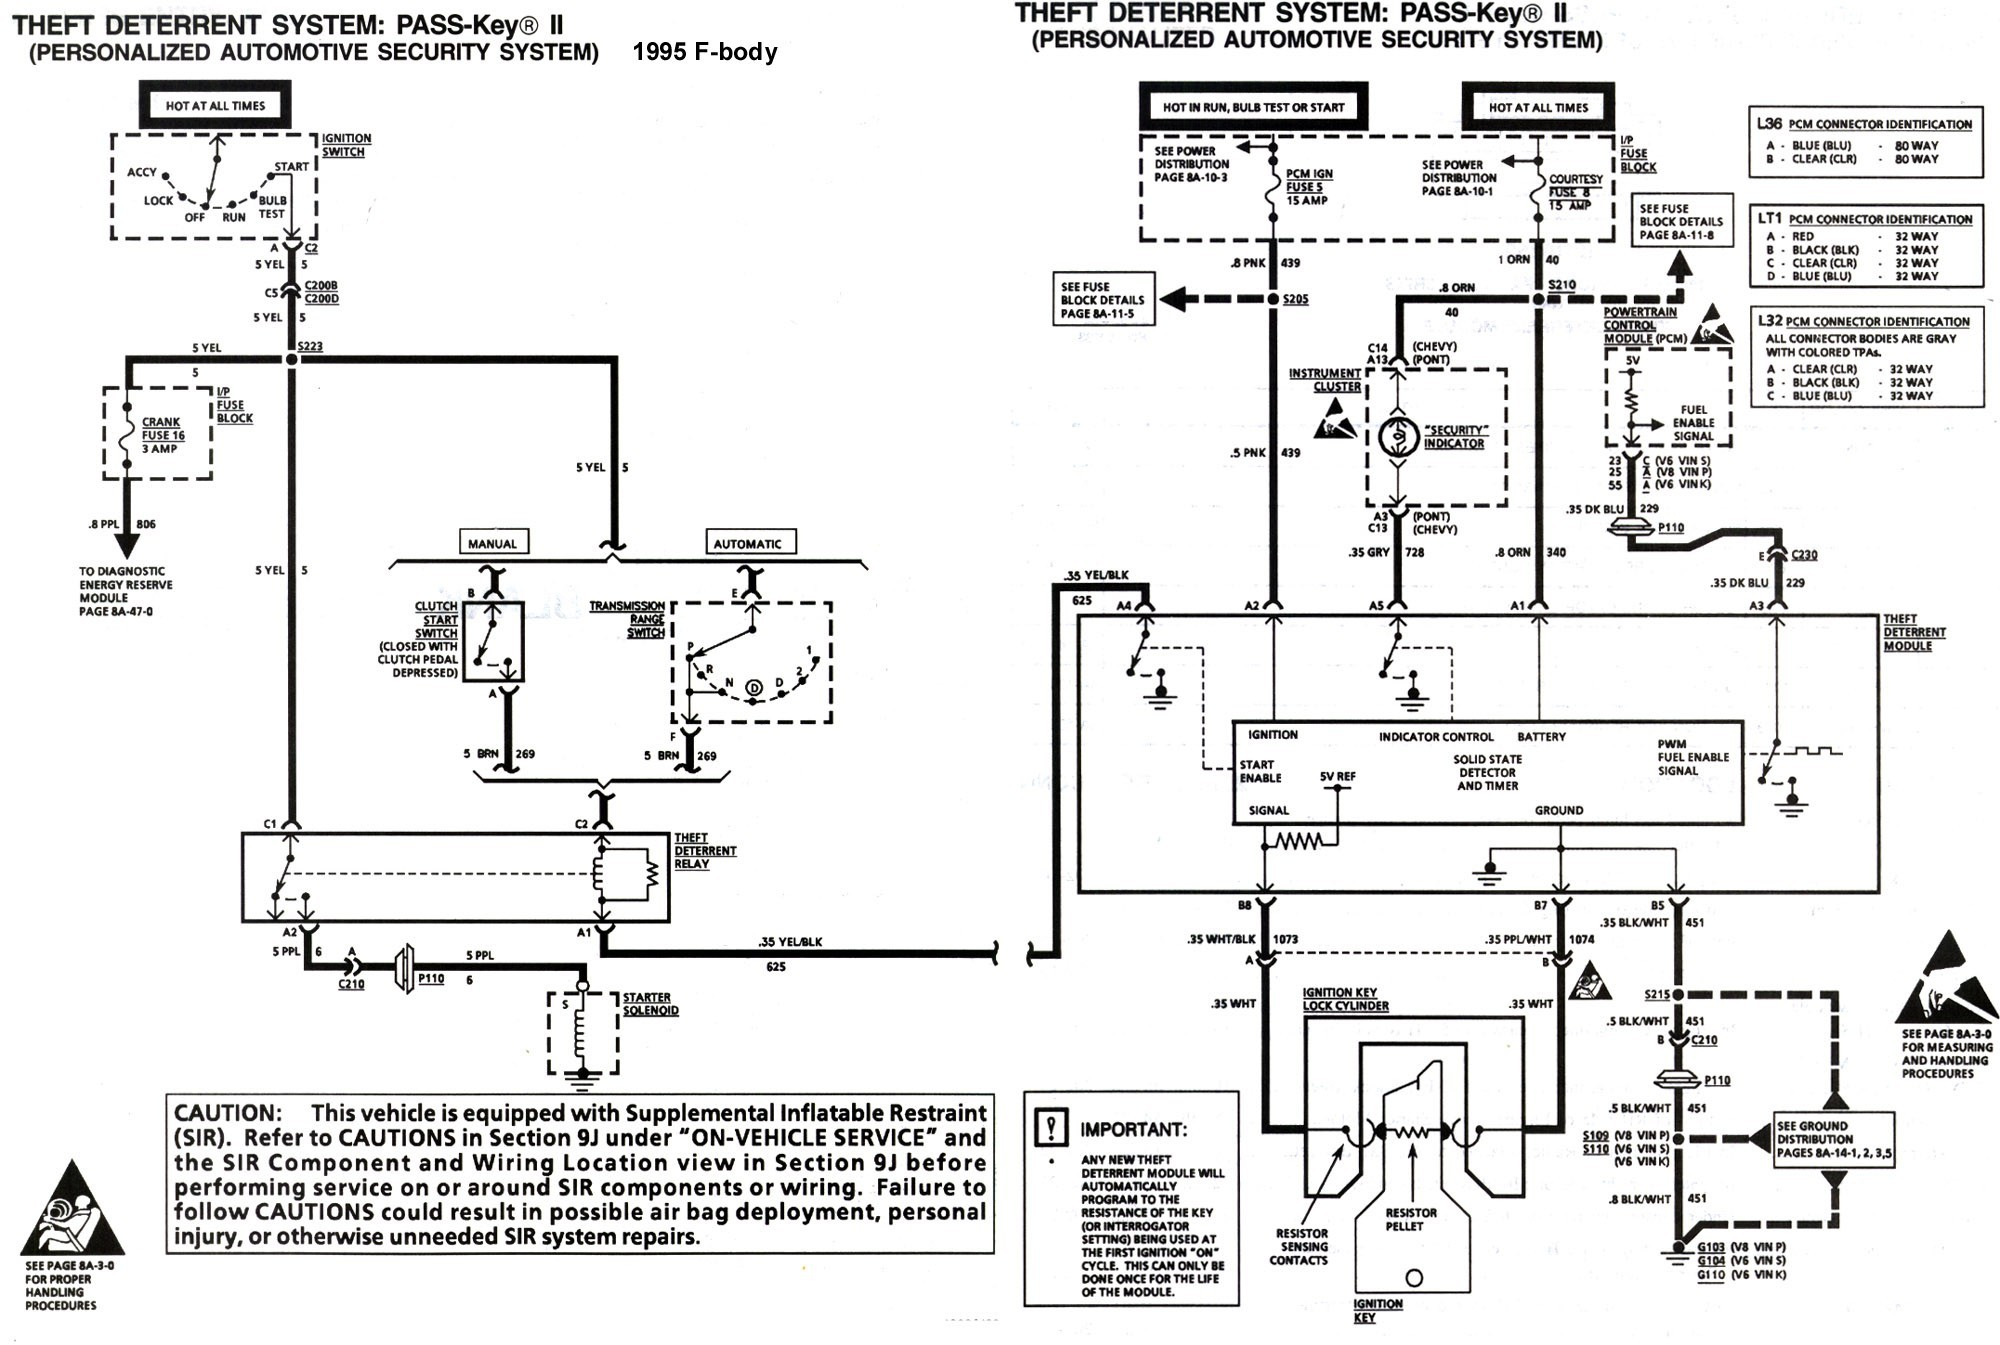 Chevy Tahoe Engine Wiring Diagram Library 2000 1999 Battery Trusted Rh Dafpods Co Lumina Transmission